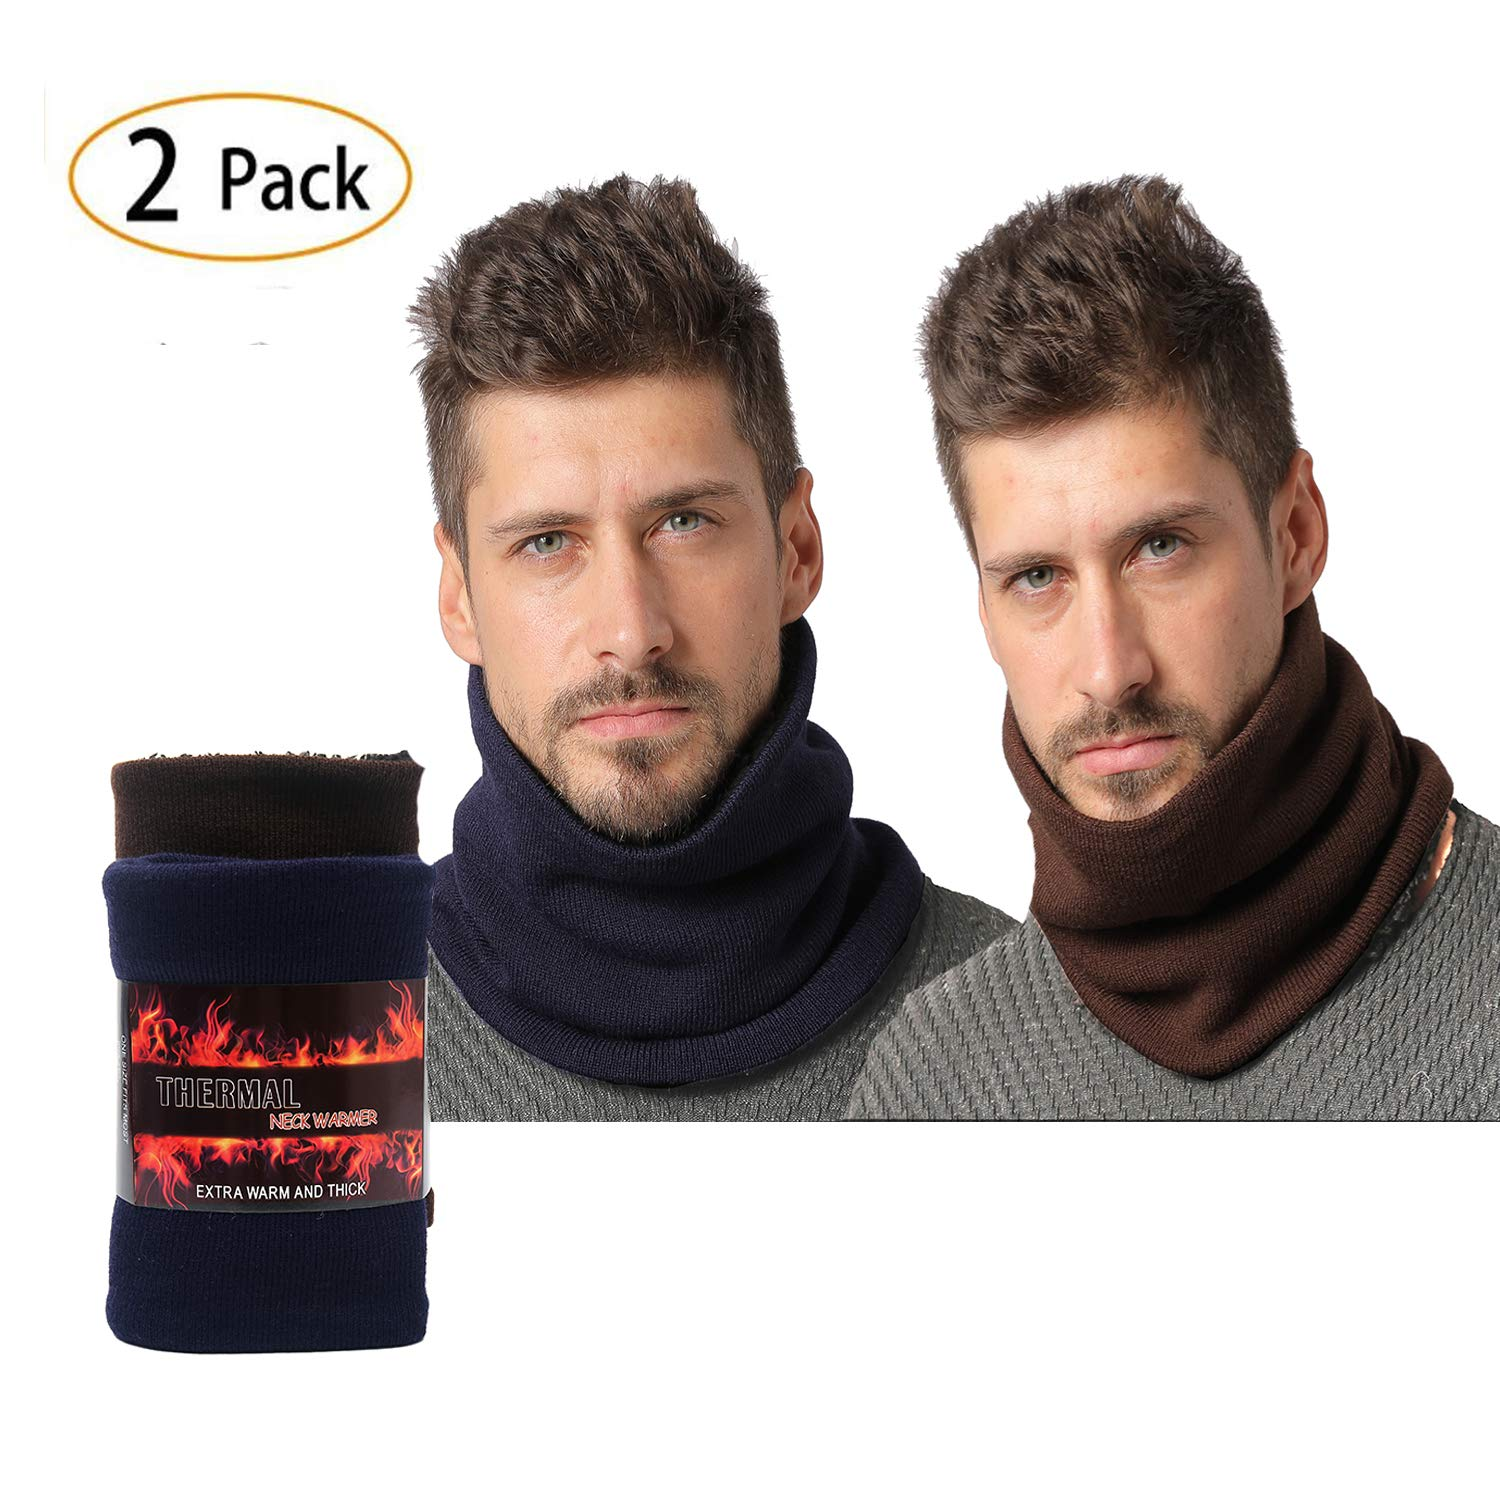 NovForth Neck Warmers Ribbed Cable Knit Winter Infinity Scarf Heat Trapping Thermal